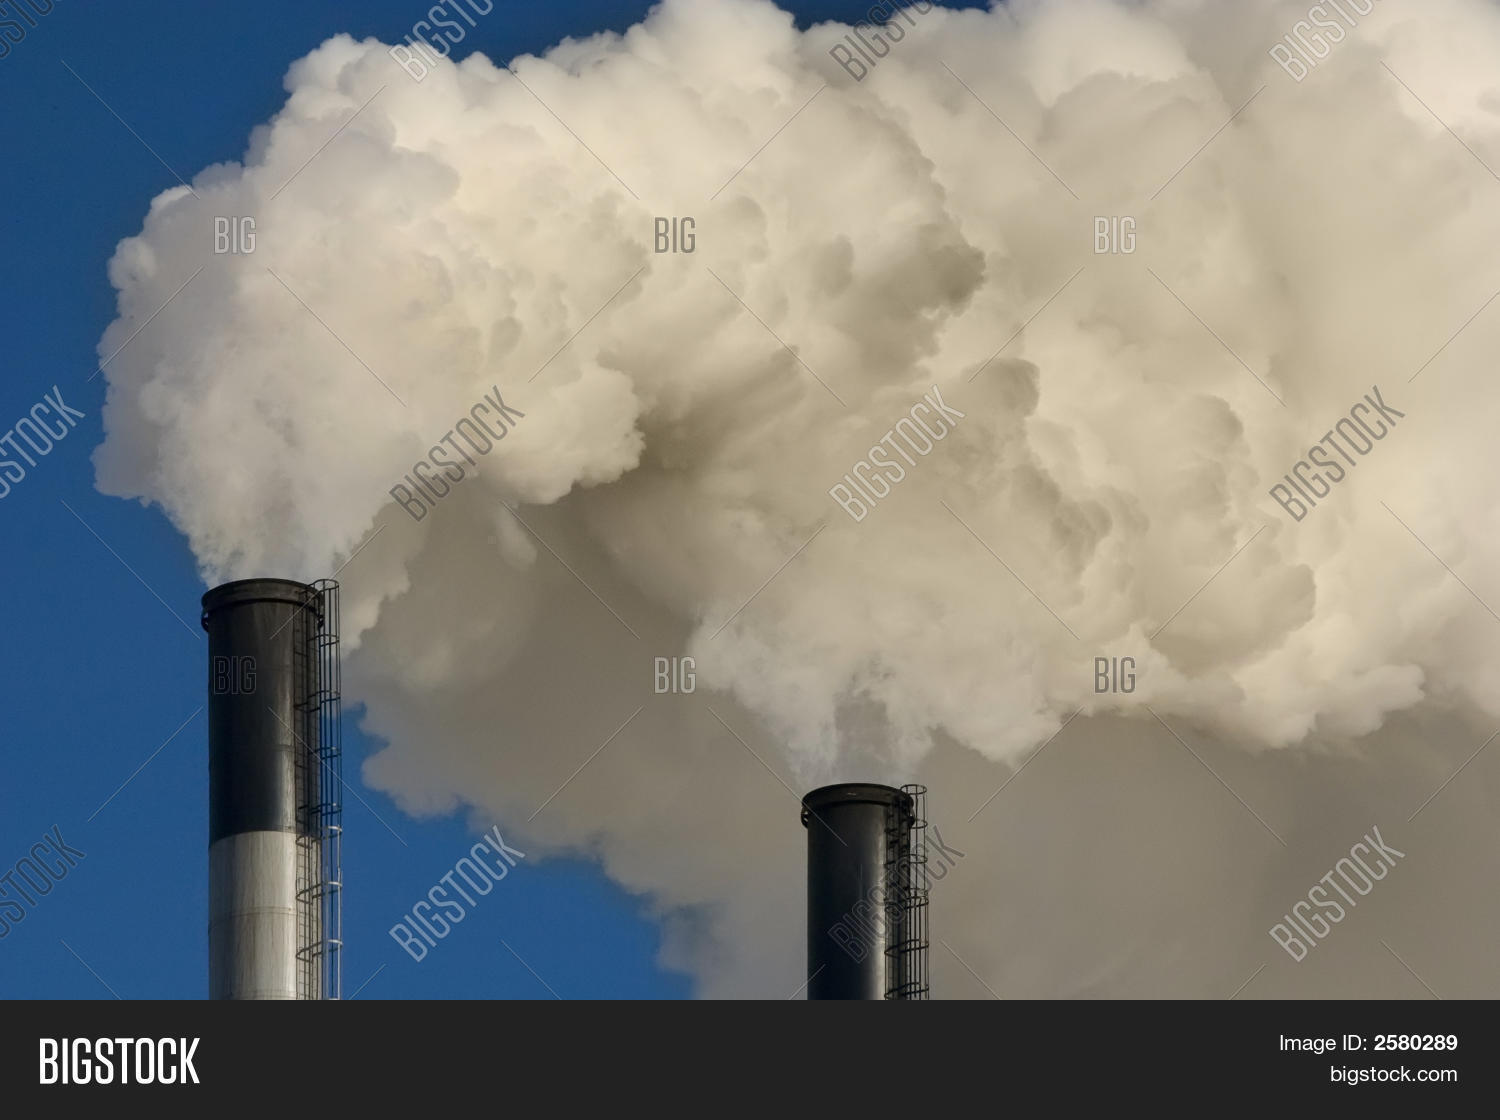 burning,carbon,chimney,coal,cooling,department,dioxide,electricity,energy,enterprise,environment,factory,fumes,funnels,generator,global,greenhouse,hazardous,heat,heating,industrial,industry,metallurgical,oil,pipes,plant,poison,pollution,power,protect,protection,rain,refinery,smog,smoke,smokestack,smoking,stacks,tower,toxic,truth,warming,world